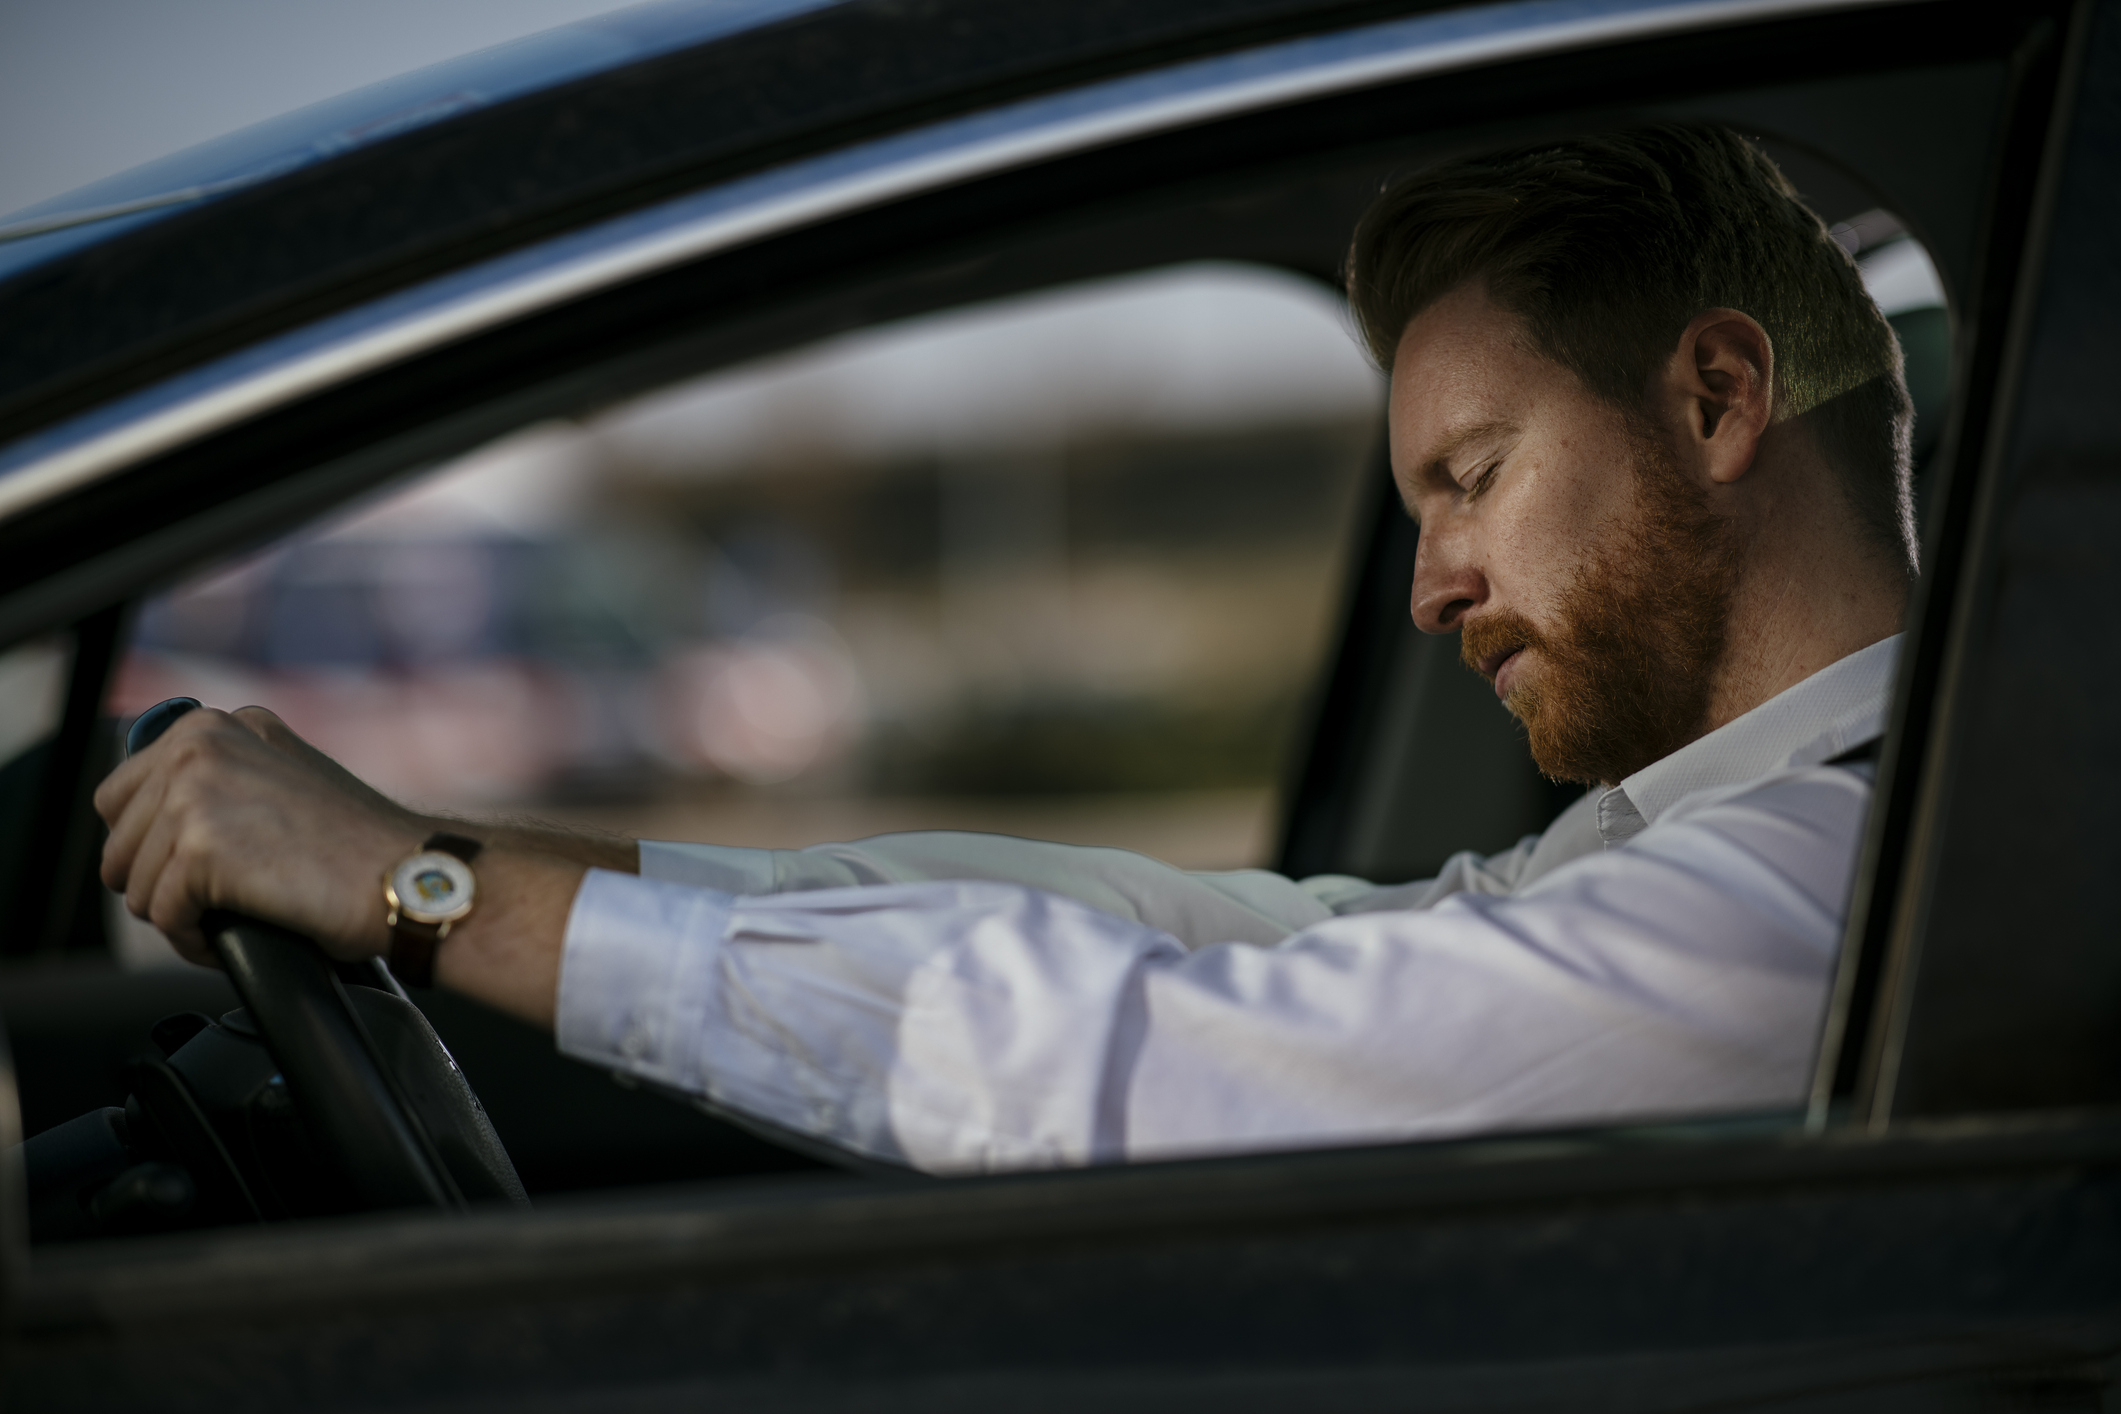 Driving Under the Influence of Sleep Deprivation